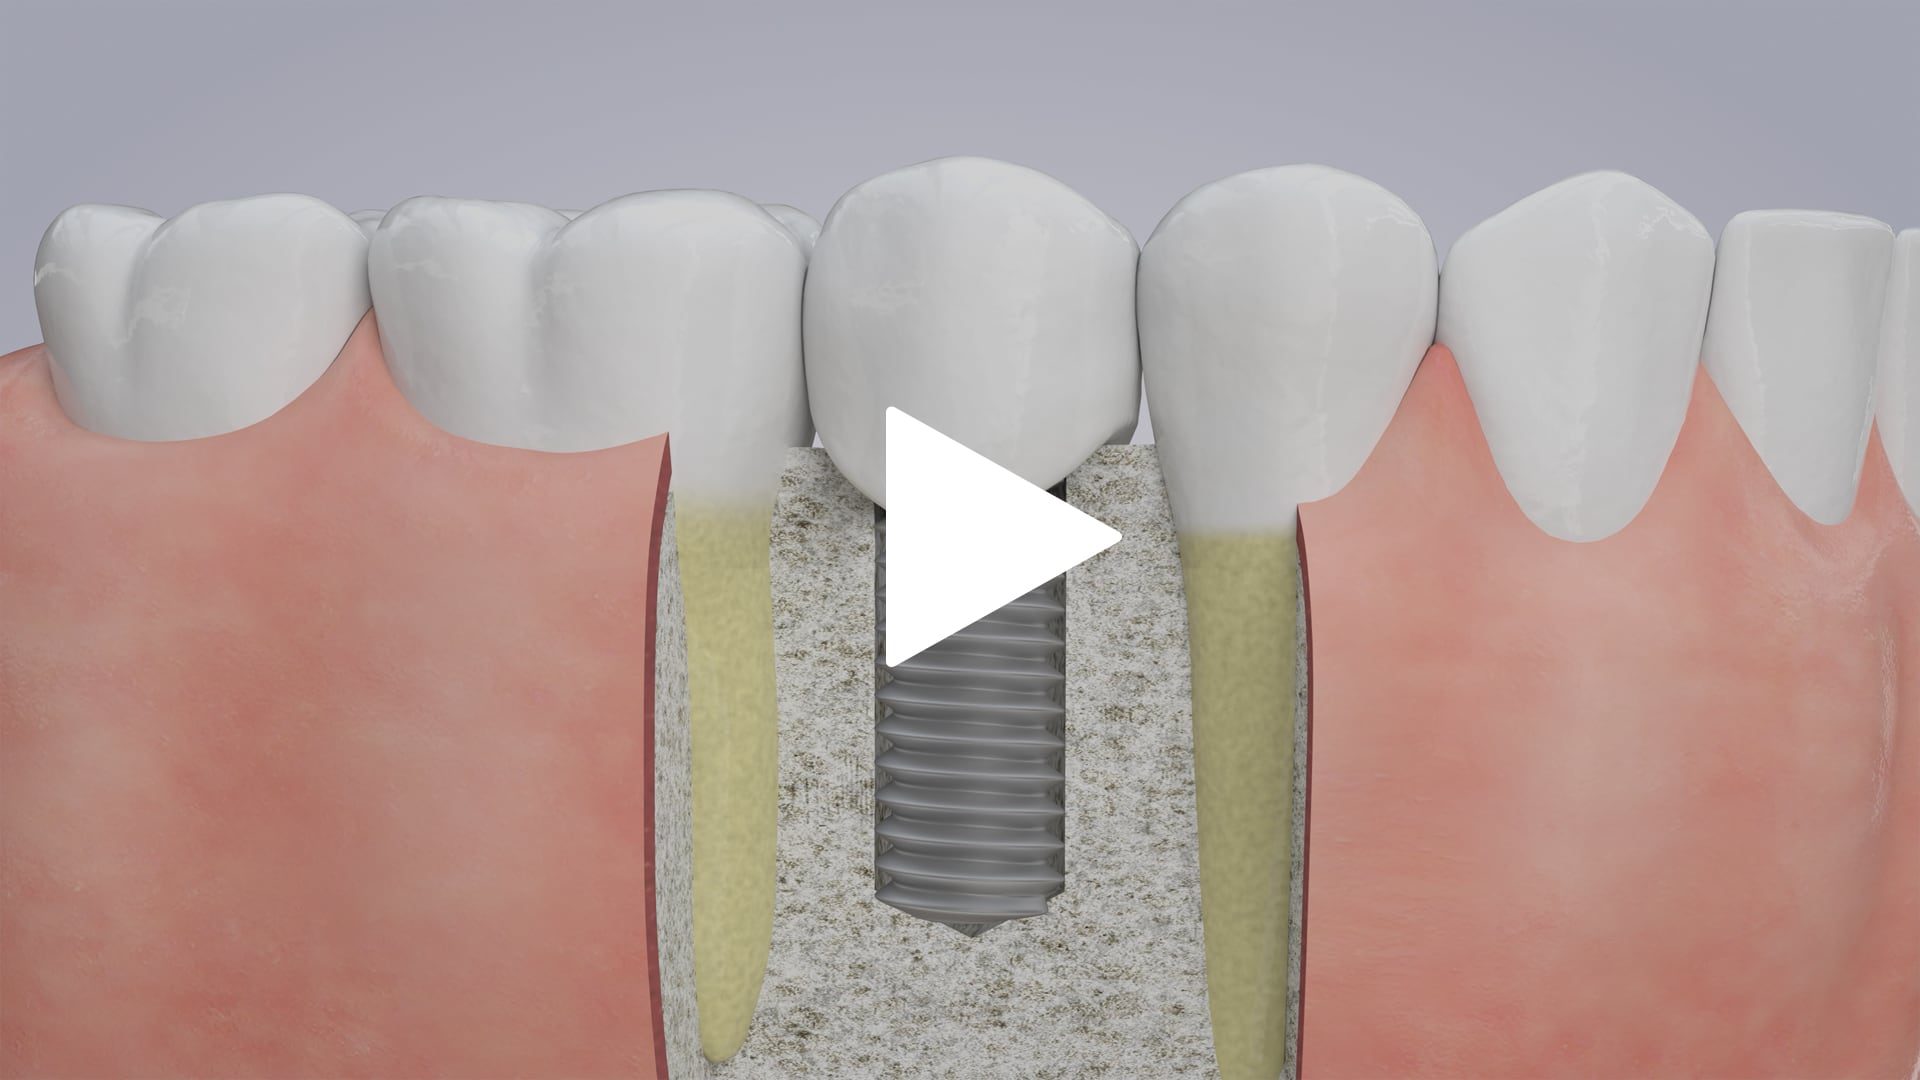 Dental Implants (Single)